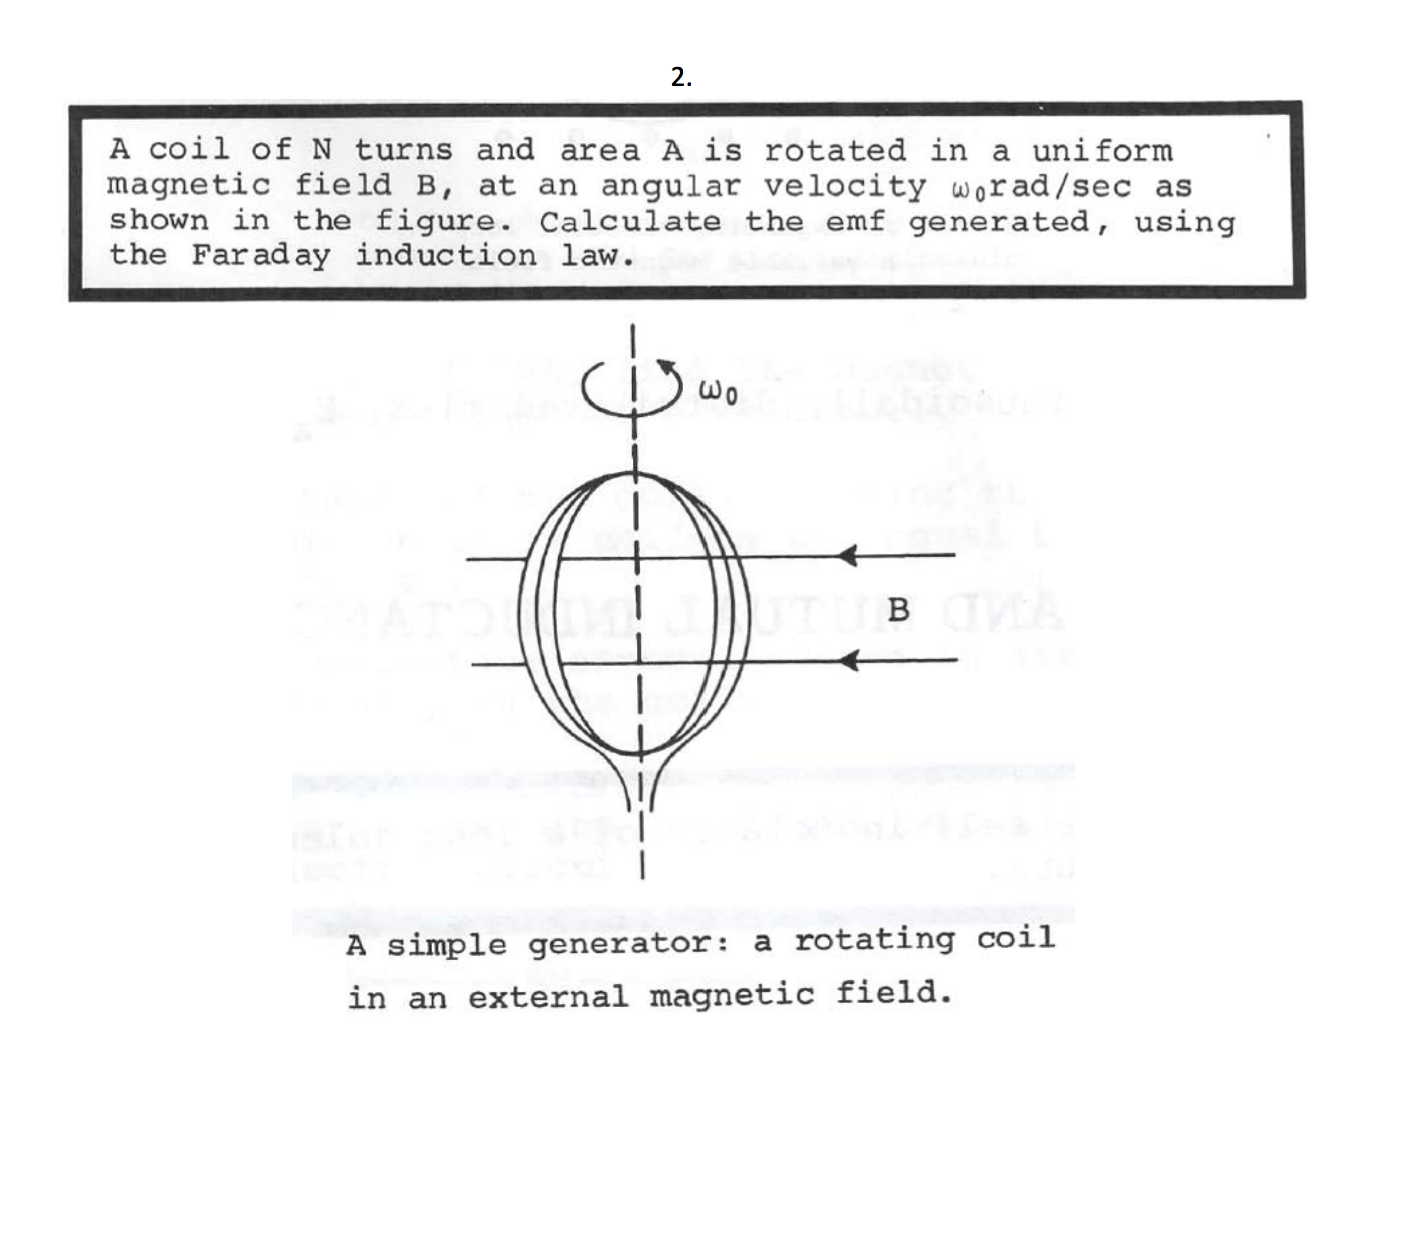 hight resolution of a coil of n turns and area a is rotated in a unifo